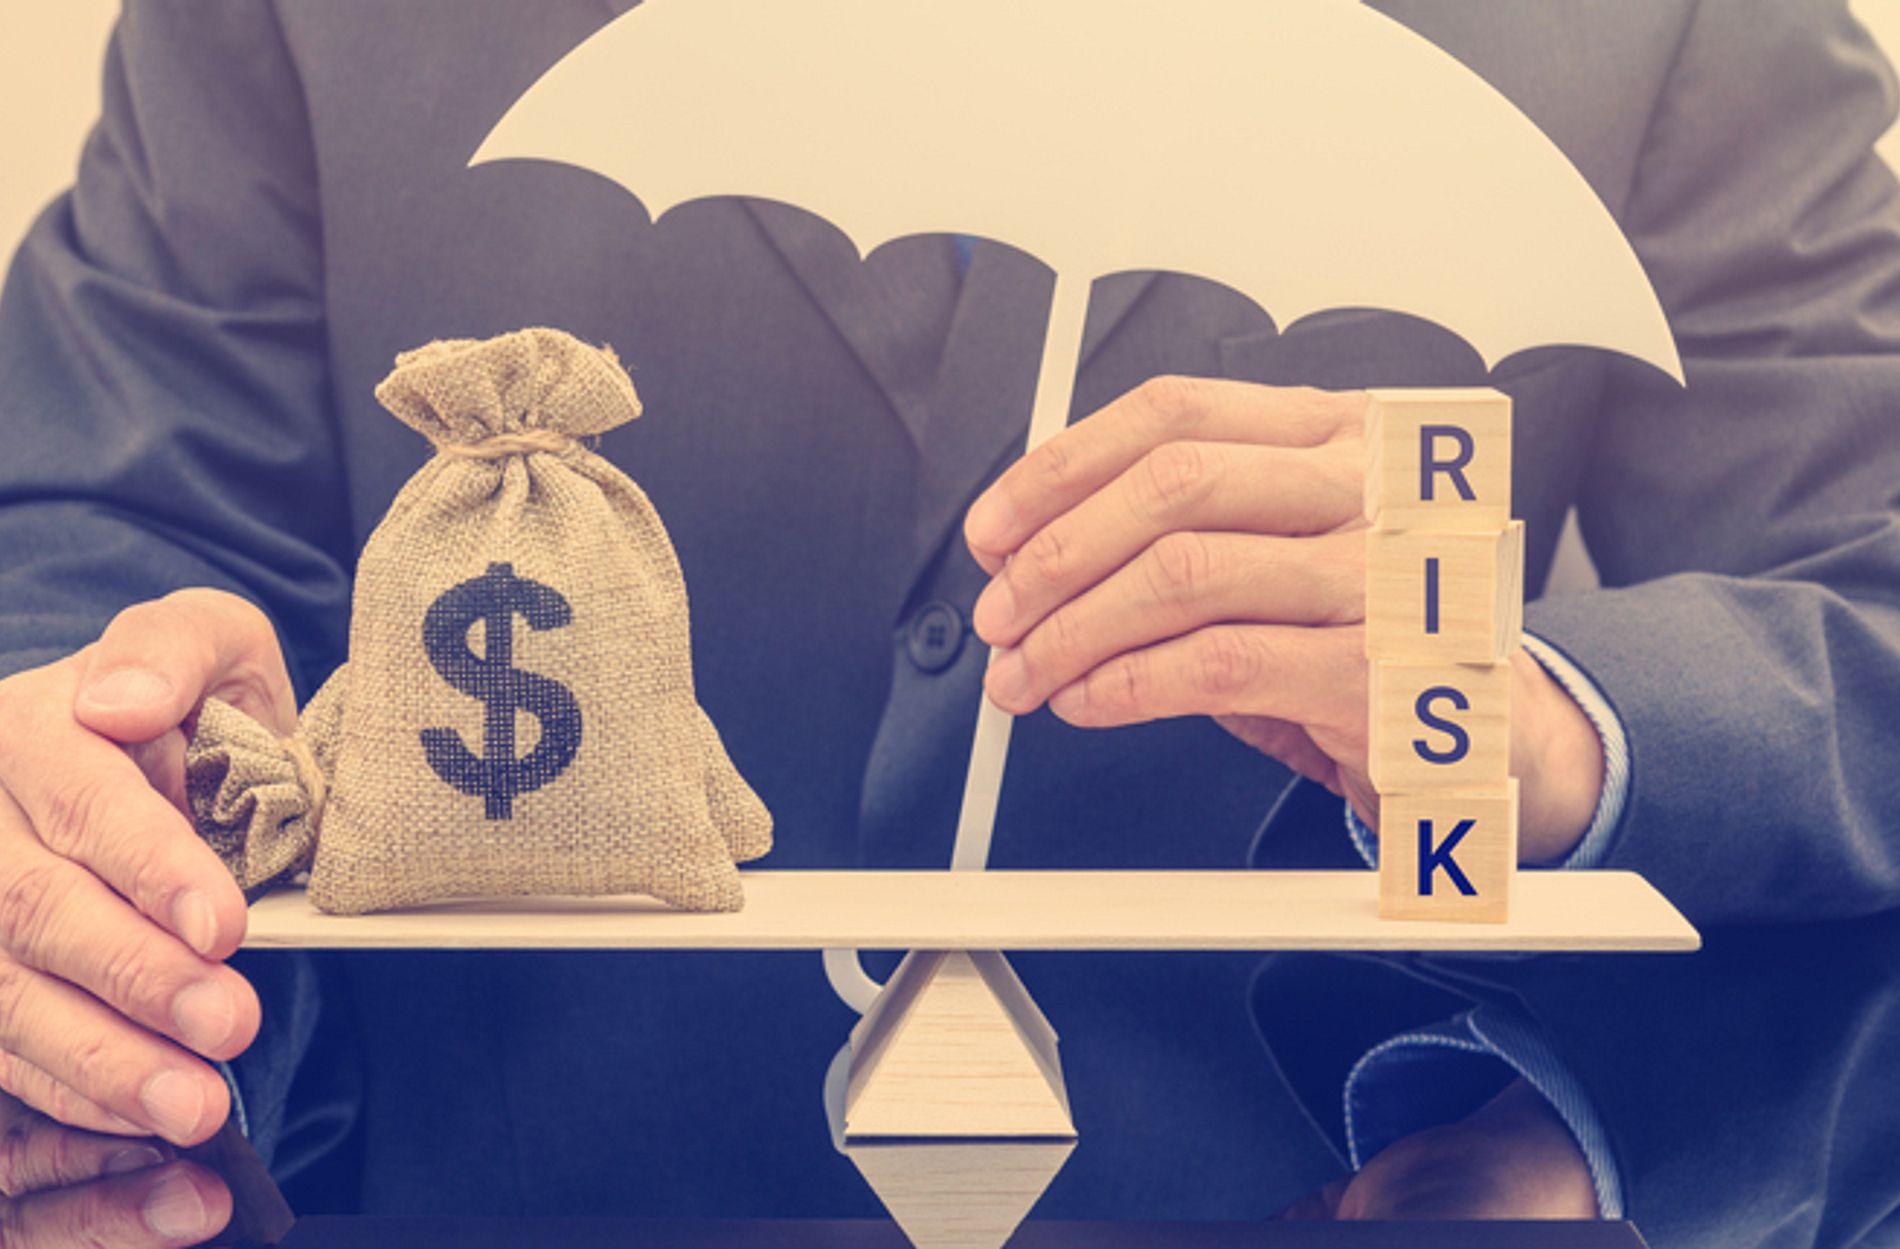 Balancing money and risk under one umbrella